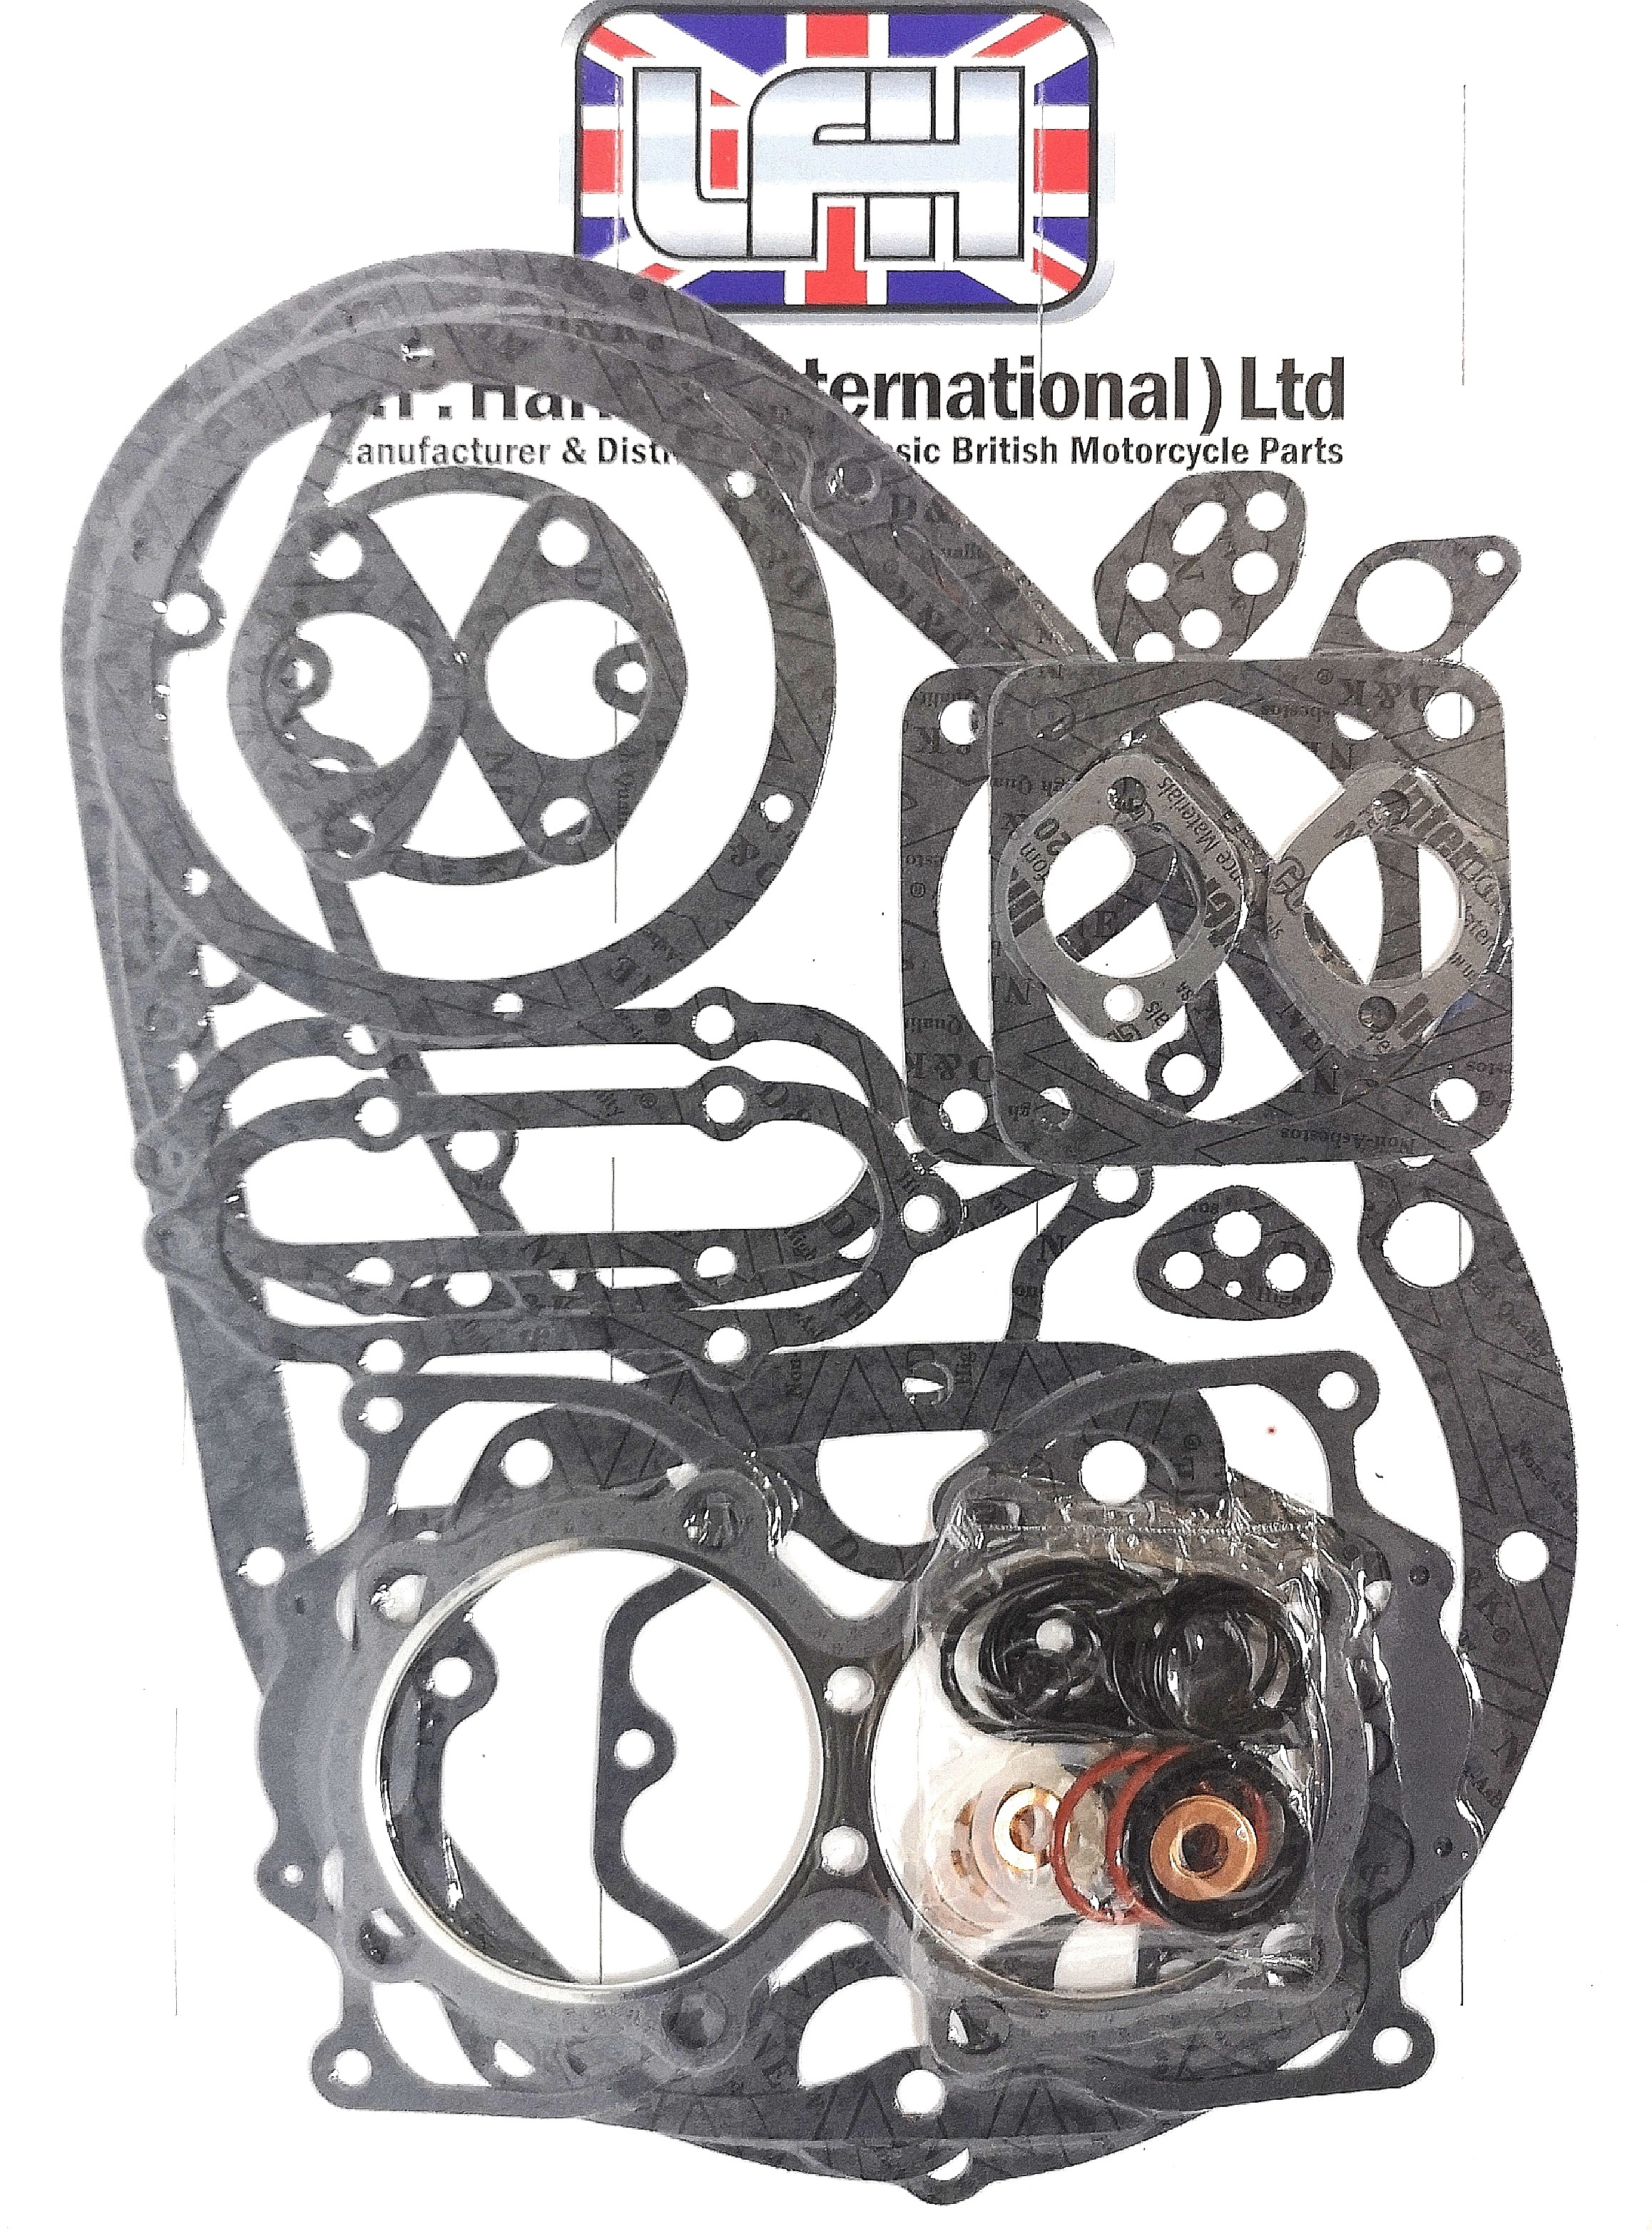 Triumph 750cc T140 Bonneville TR7 Tiger 1973 -1983 Engine Gasket Set UK 99-7002